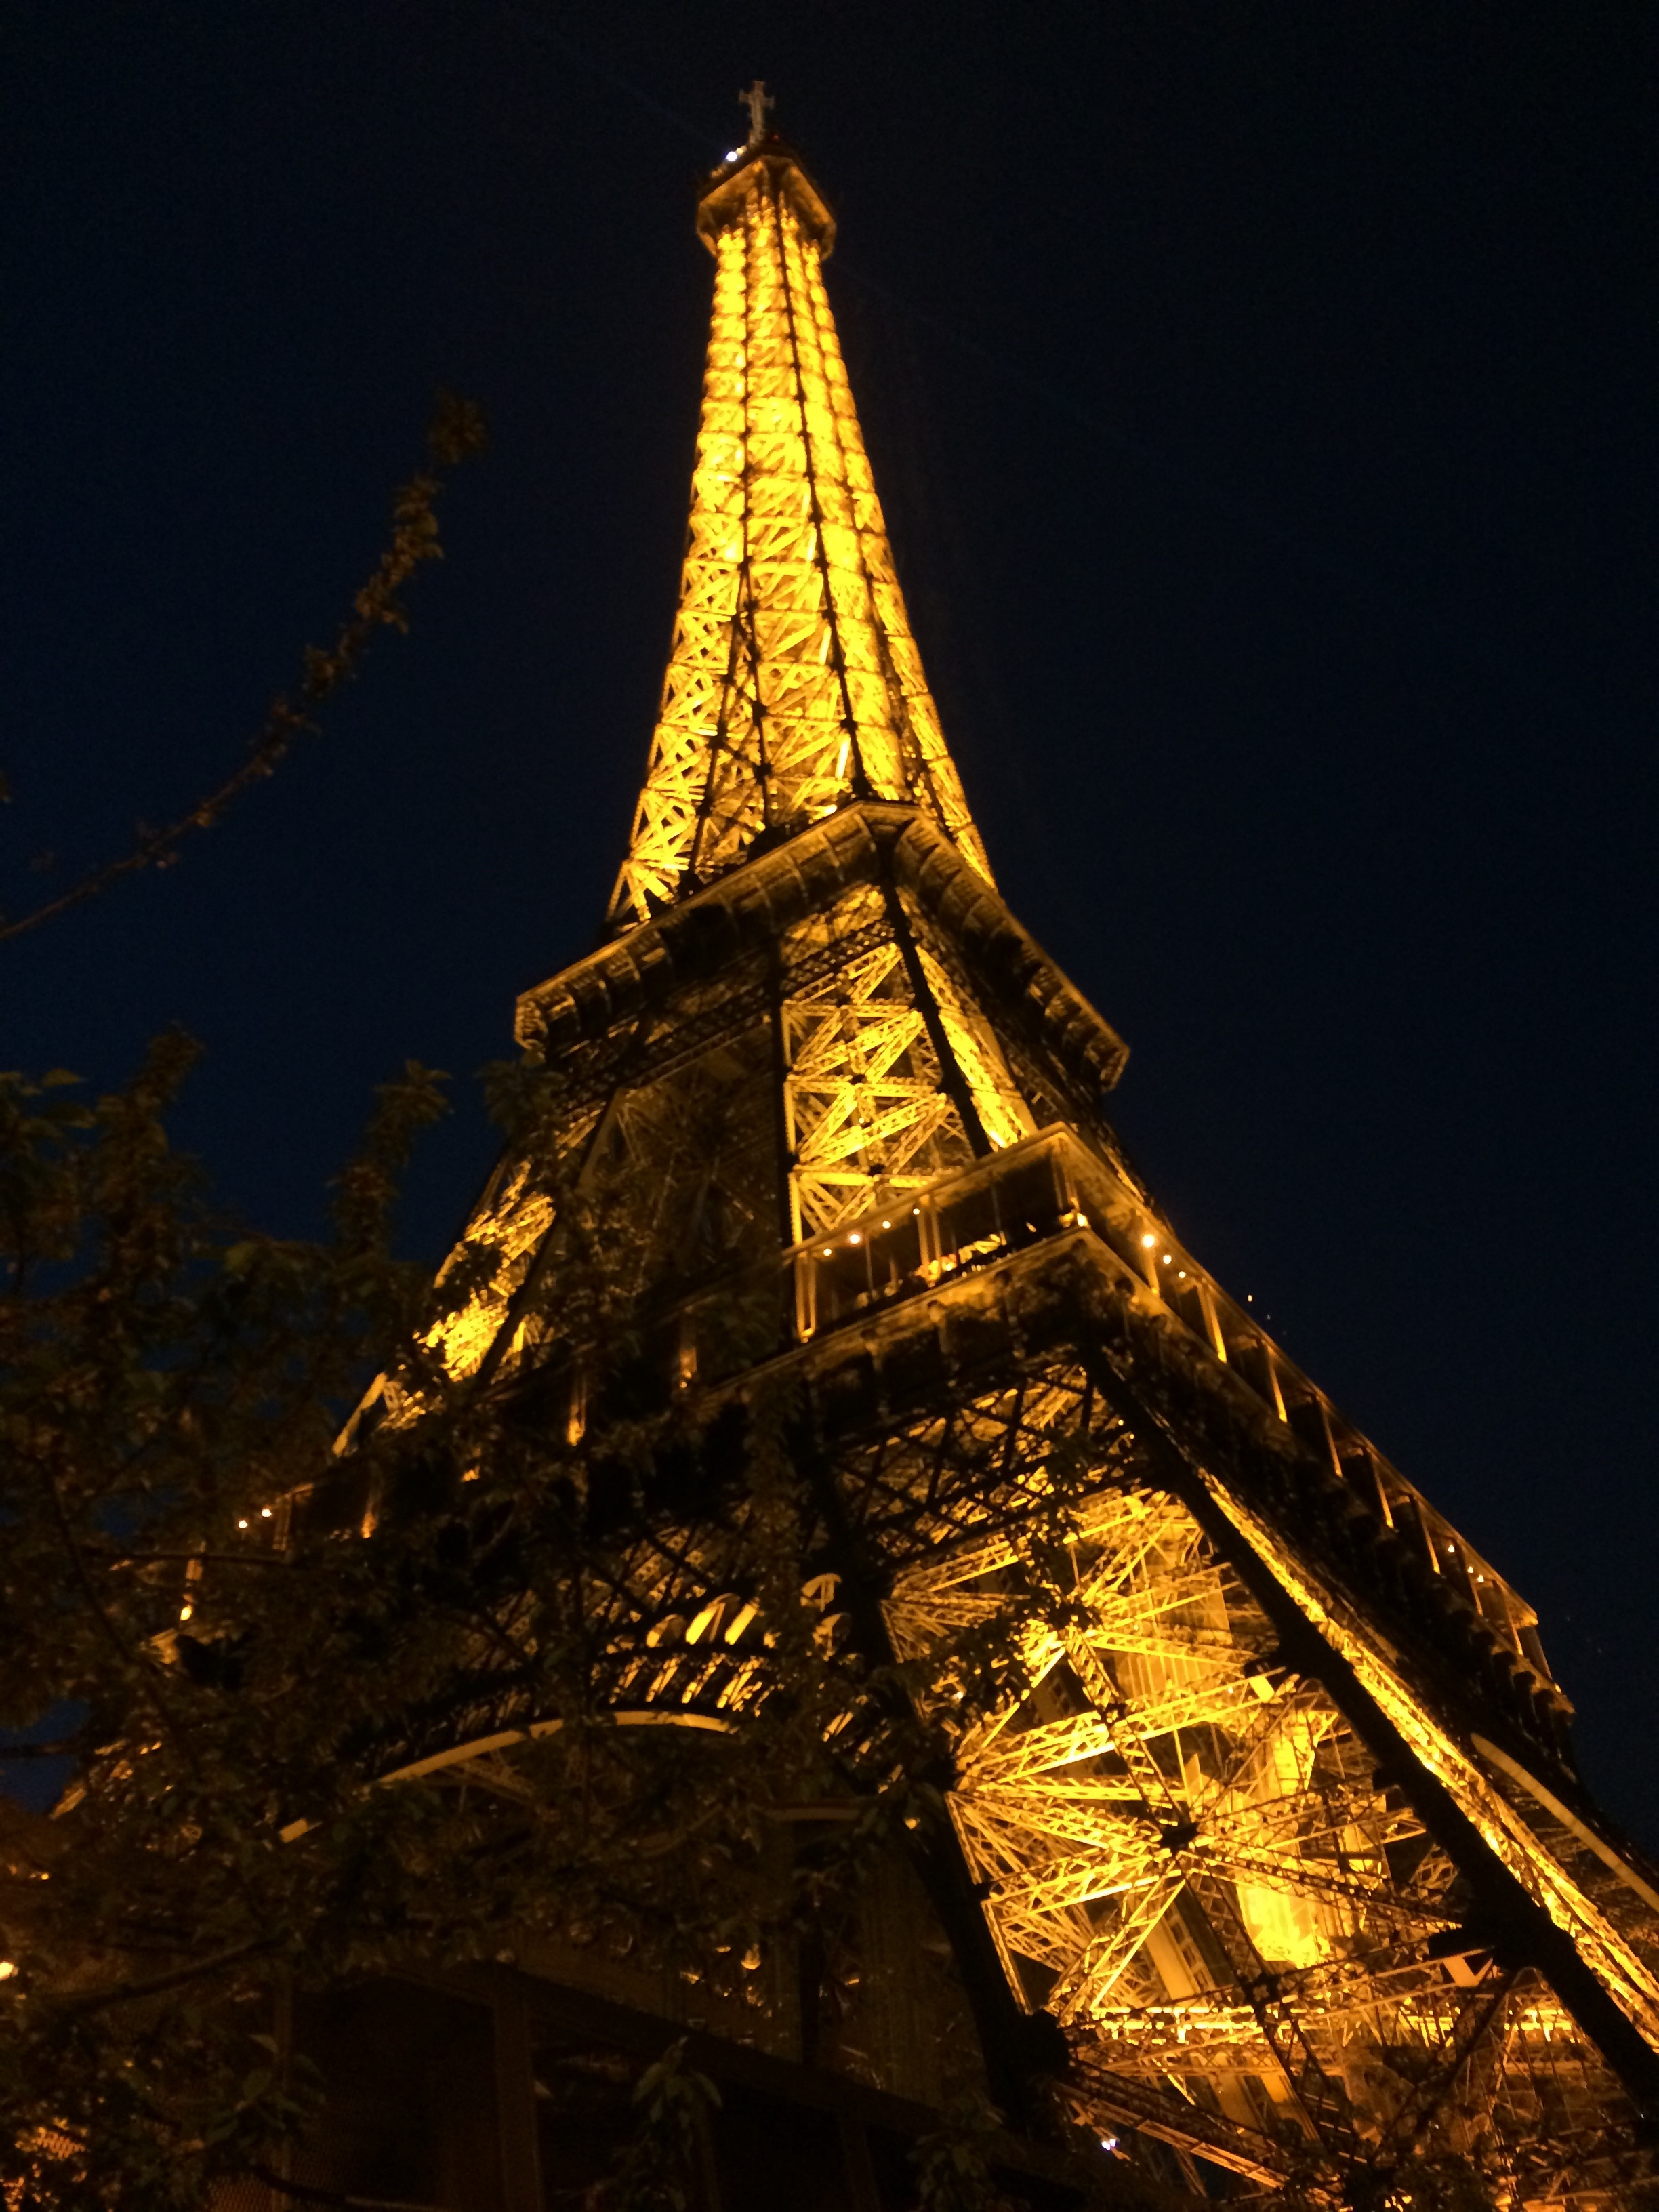 Tour Eiffel at night in Paris, France